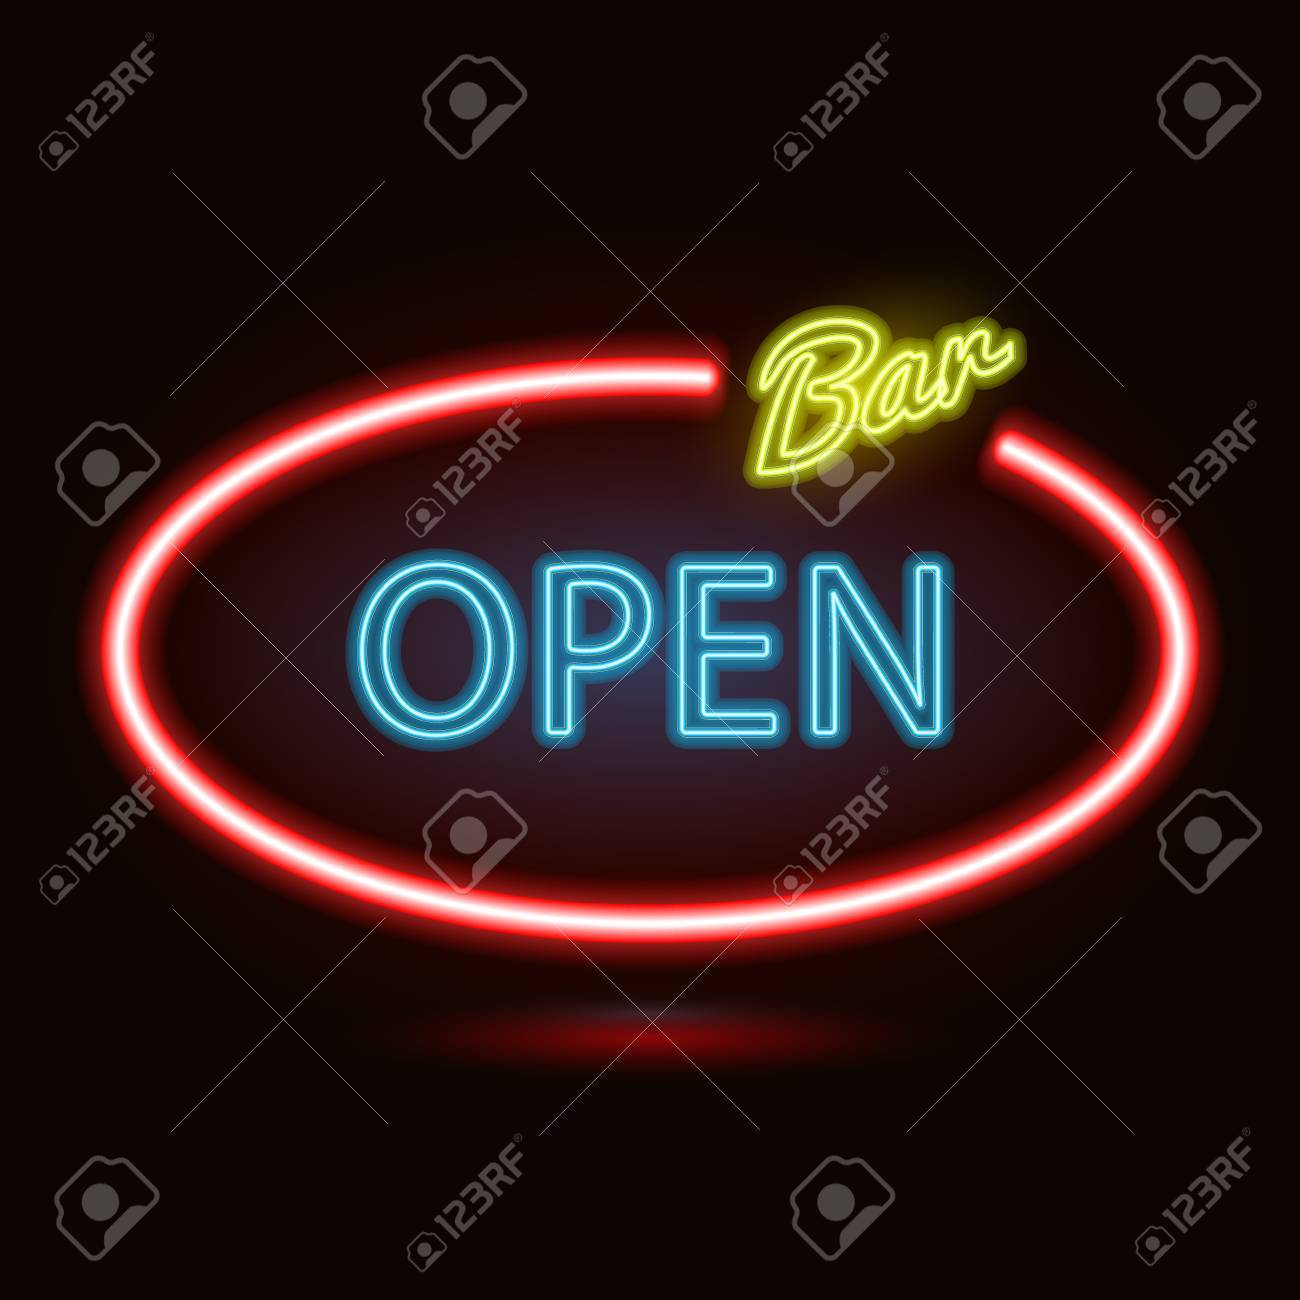 Neon sign with type bar open red and blue and yellow neon lights neon sign with type bar open red and blue and yellow neon lights mozeypictures Gallery